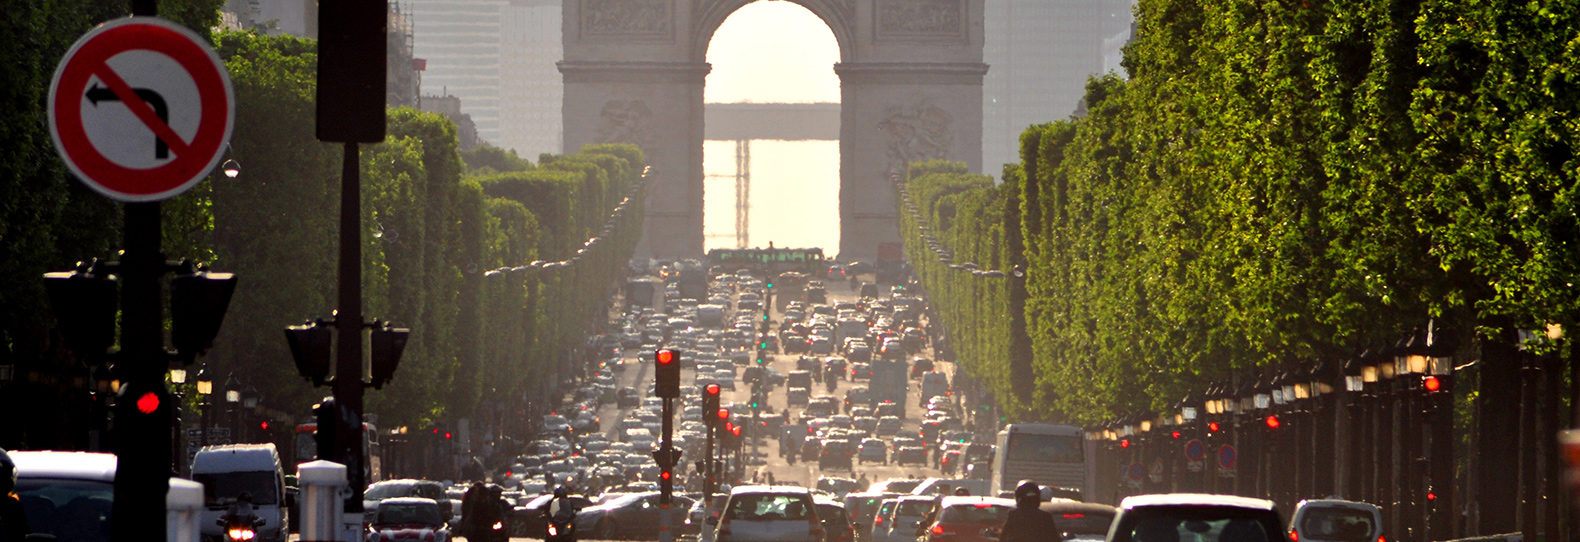 Paris-City-Traffic-Full-Width-Tall-1580x542